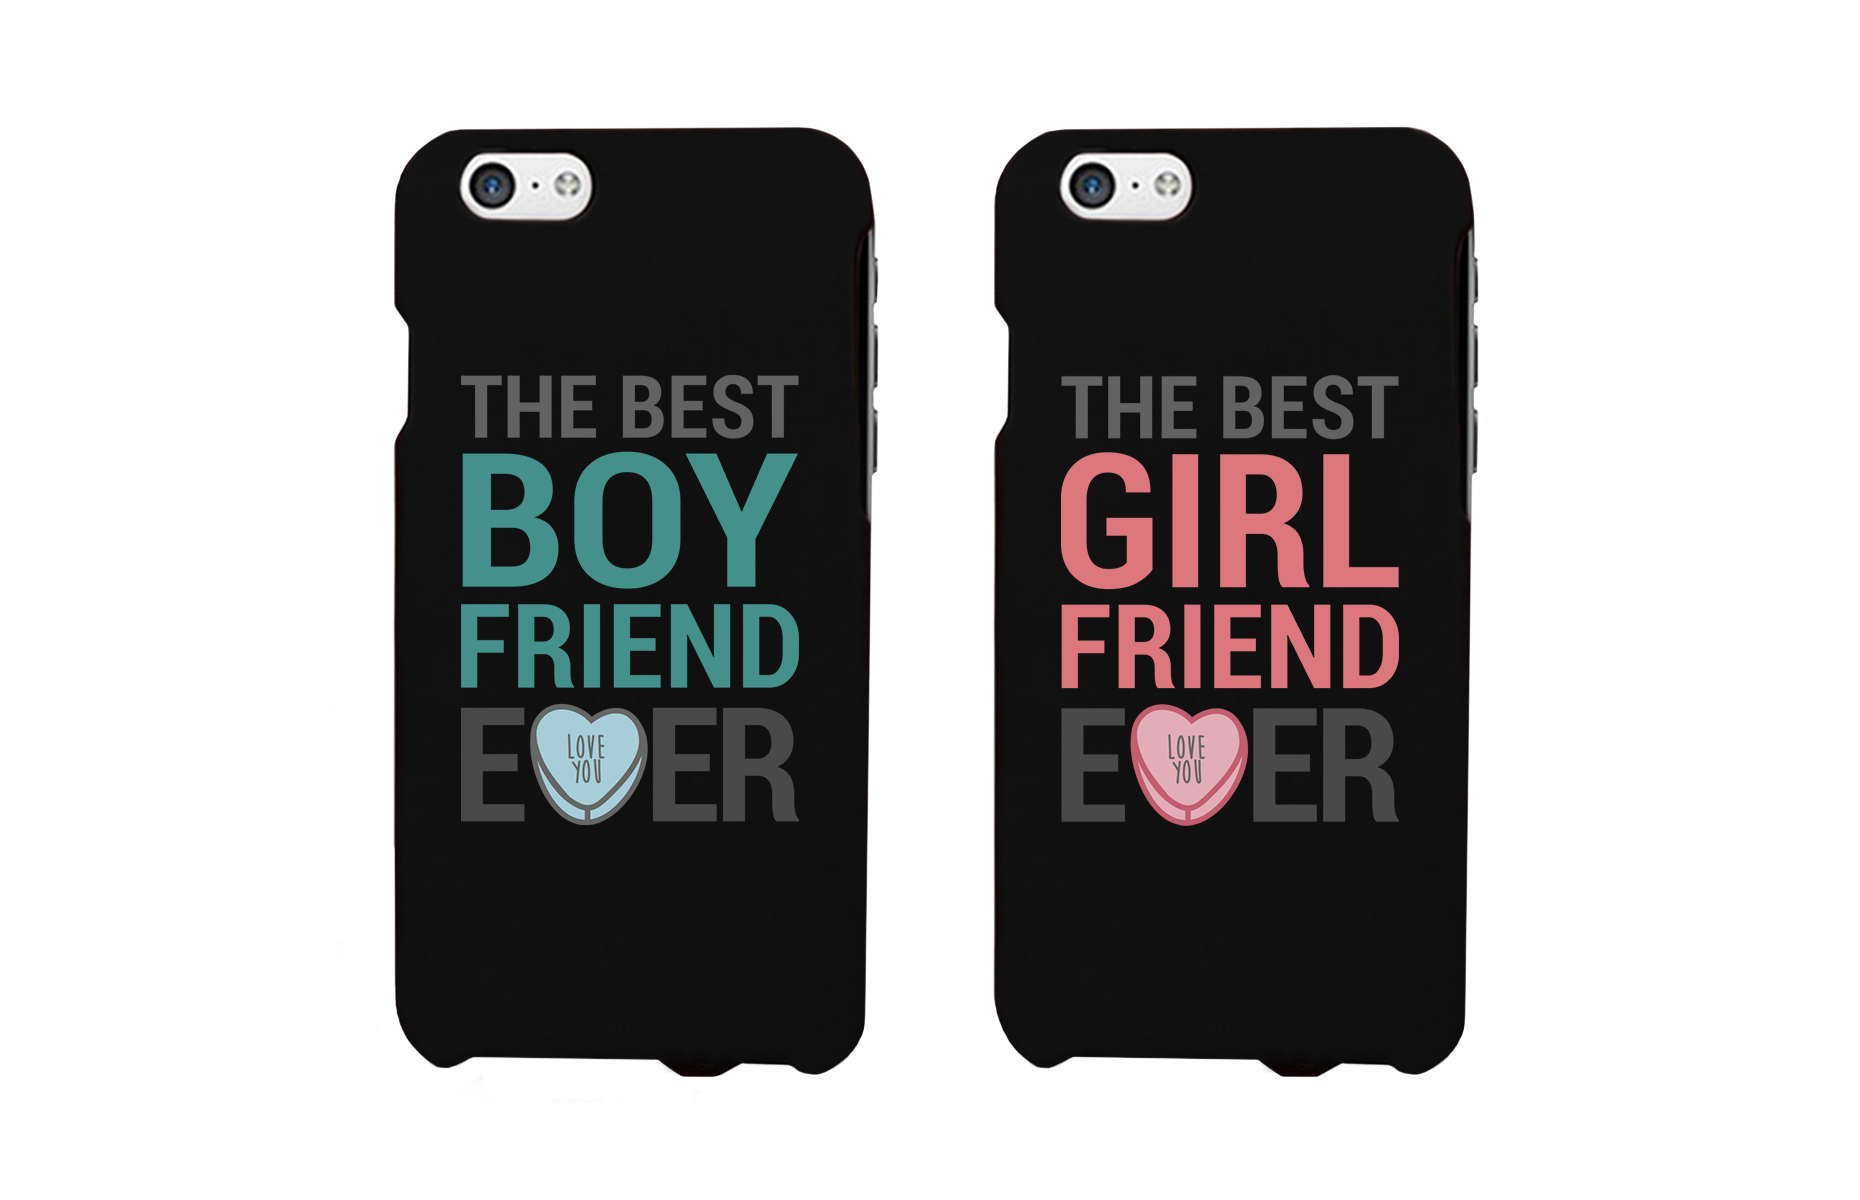 d75f2247ff Best Boyfriend and Girlfriend mix-and-match phone cases by 365inlove  #valentinesday #valentinesdaygift #bae #boyfriend #girlfriend #couples  #365inlove